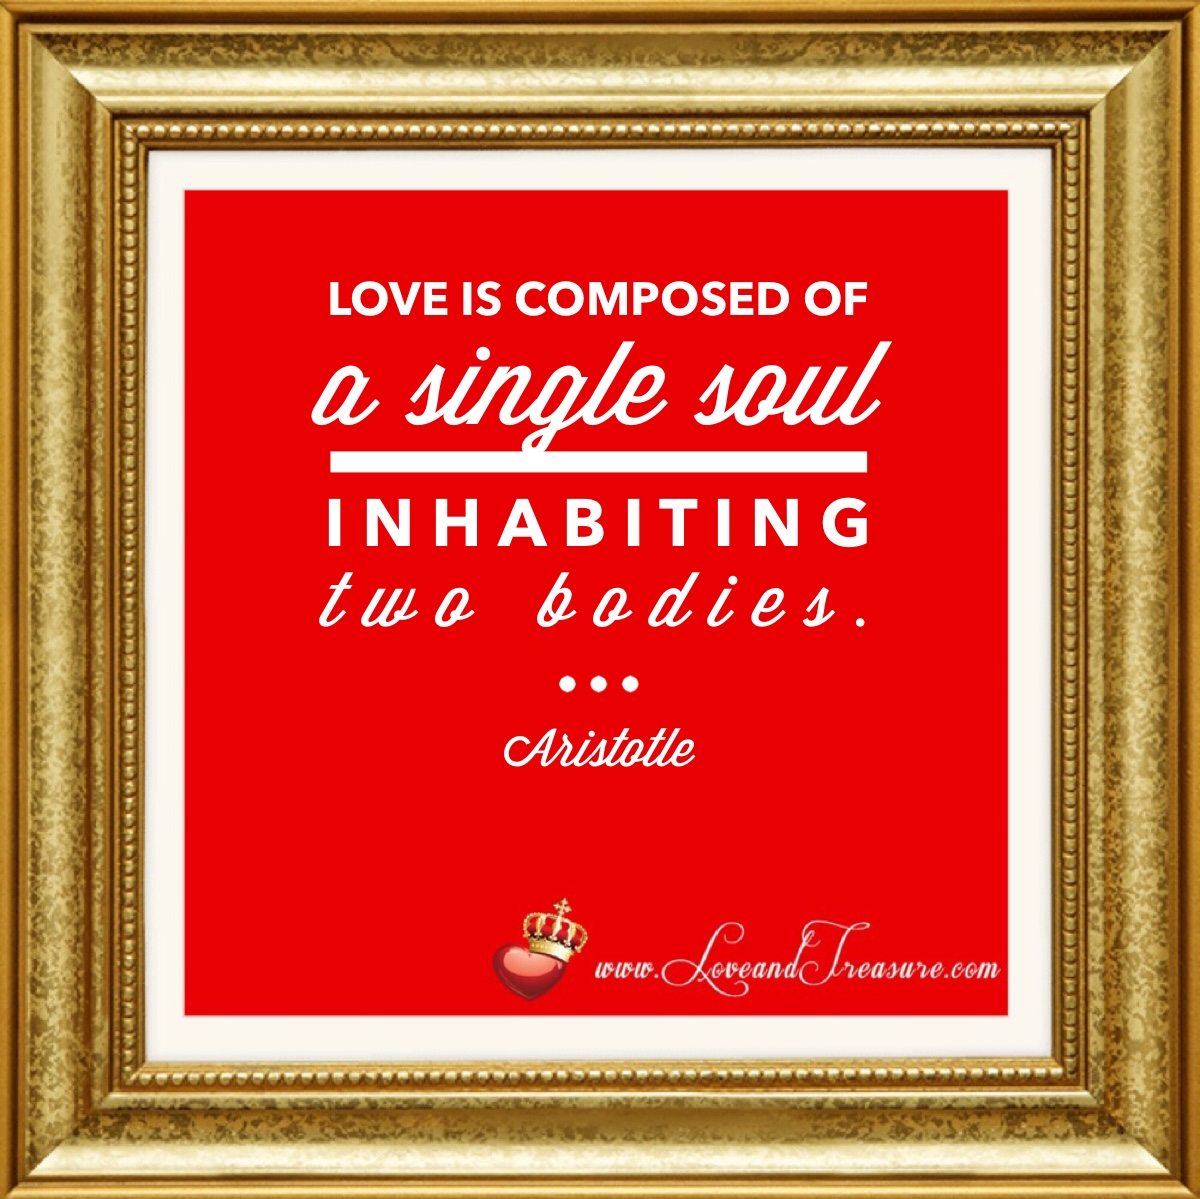 Love is composed of a single soul inhabiting two bodies. -Aristotle, #love, love and treasure, www.loveandtreasure.com